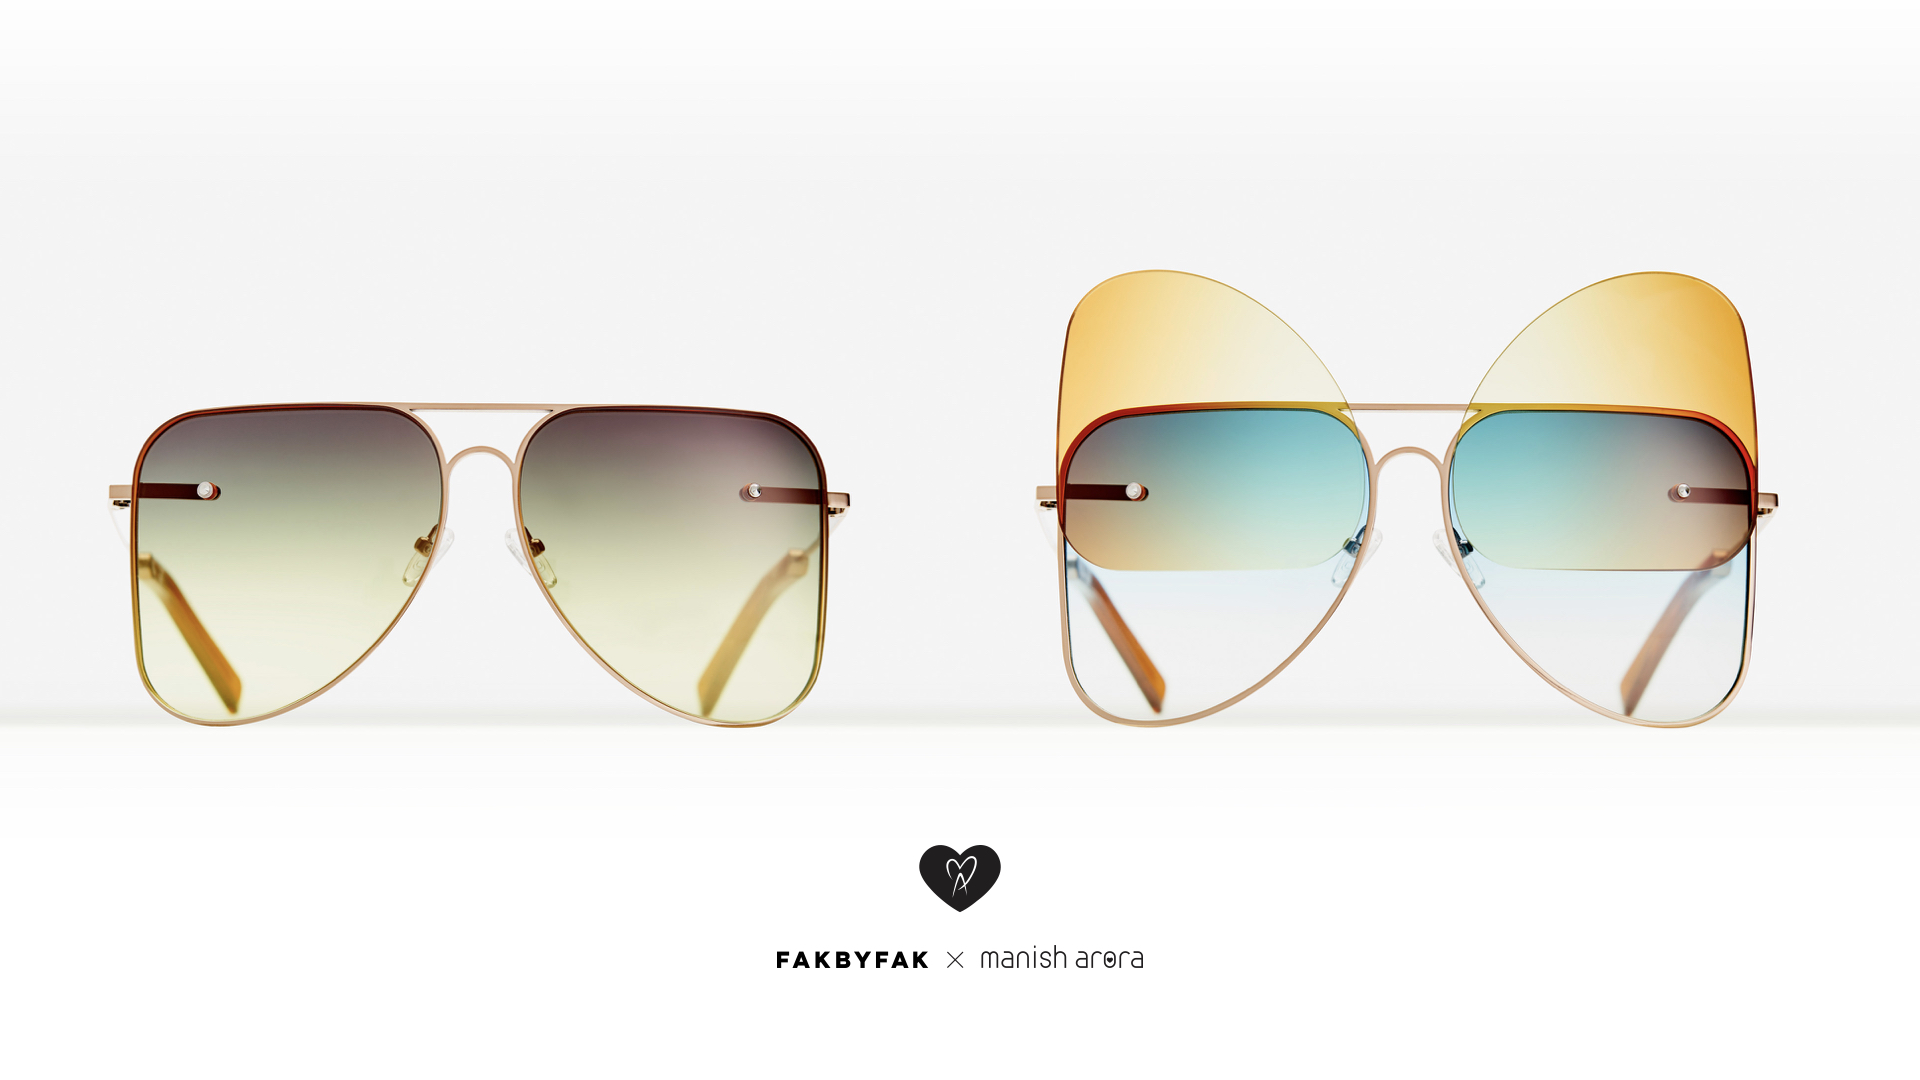 With or without - Manish Arora transformable eye wear Fakbyfak